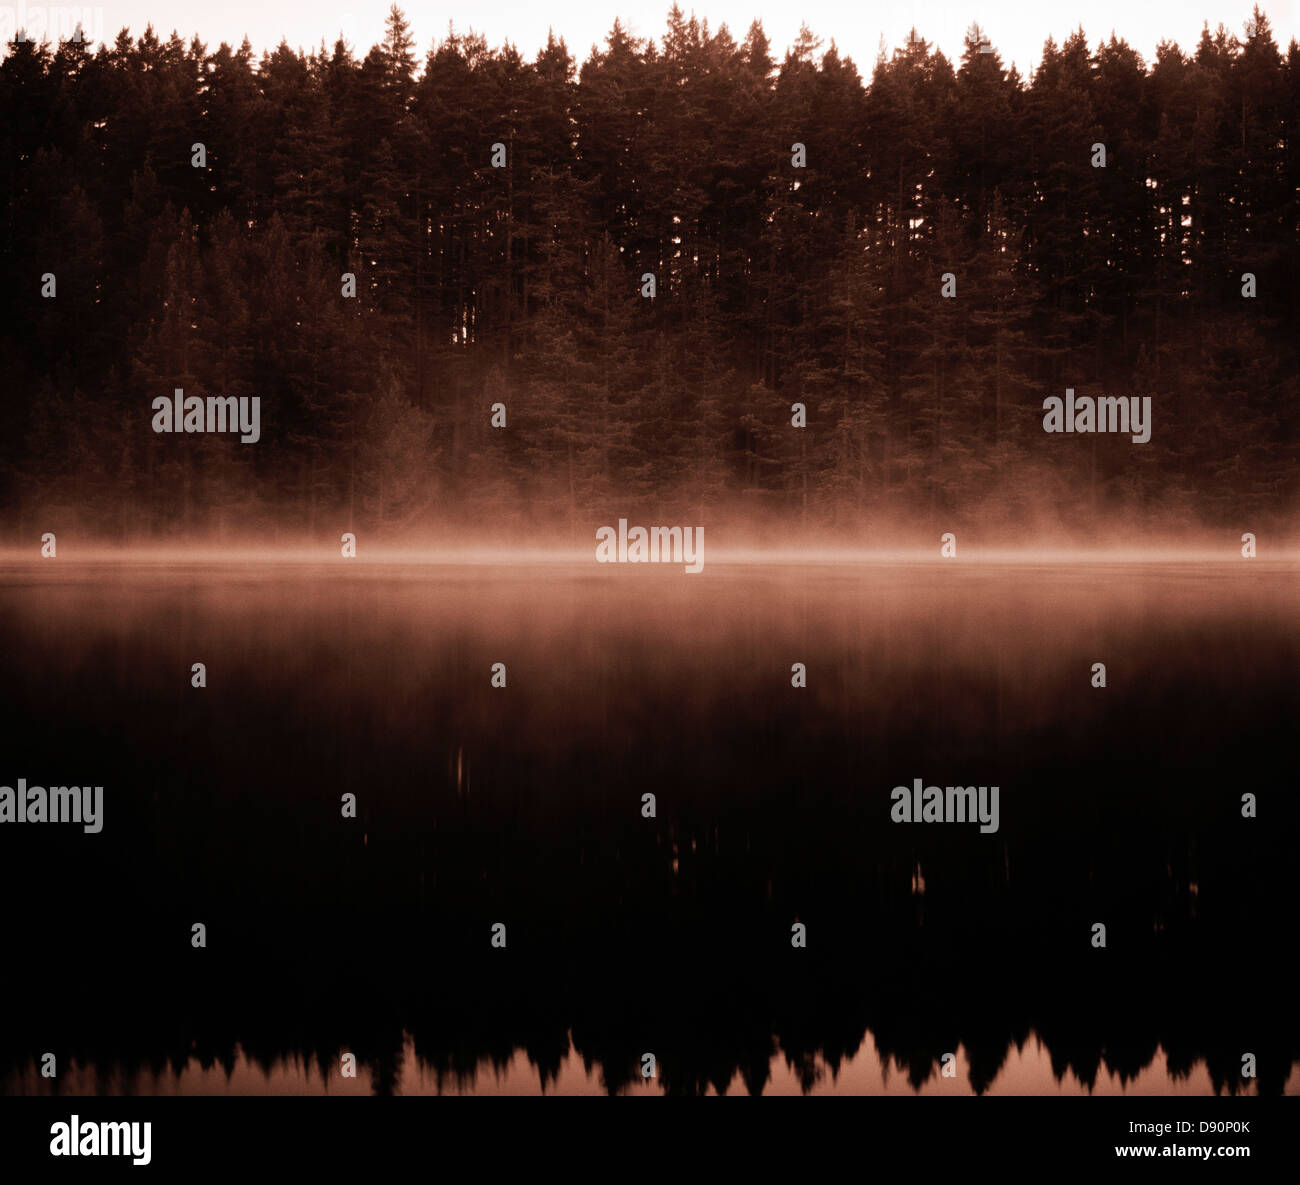 A forest by a lake, Dalarna, Sweden. - Stock Image